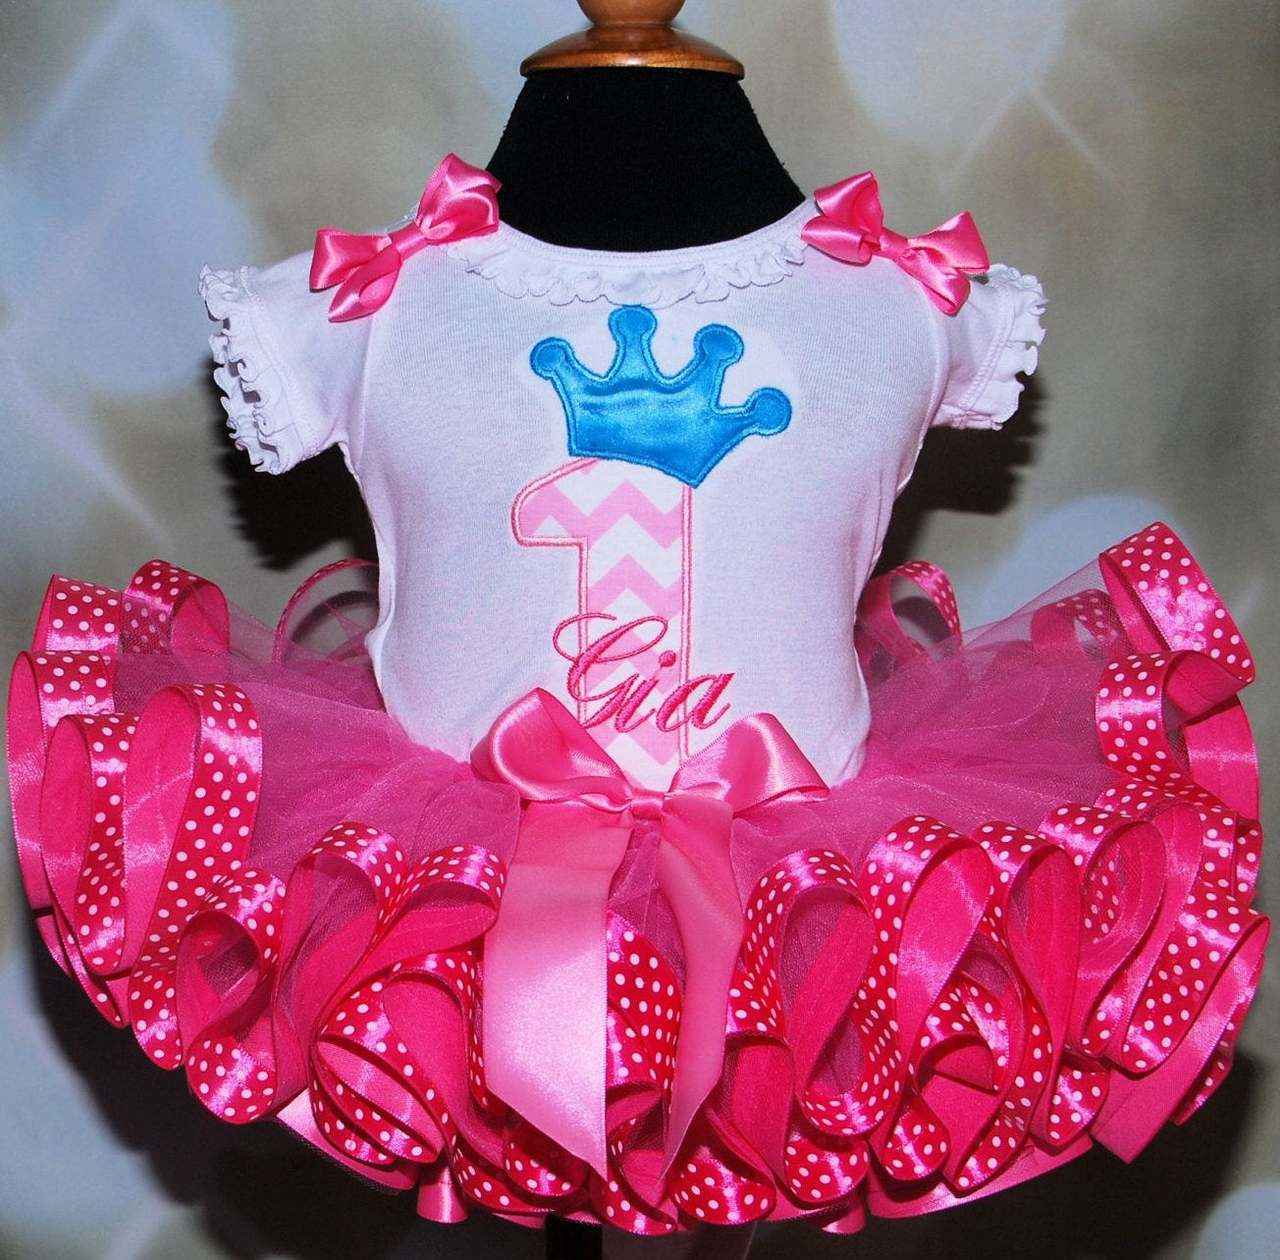 1st birthday girl outfit, perfect for your 1st birthday princess